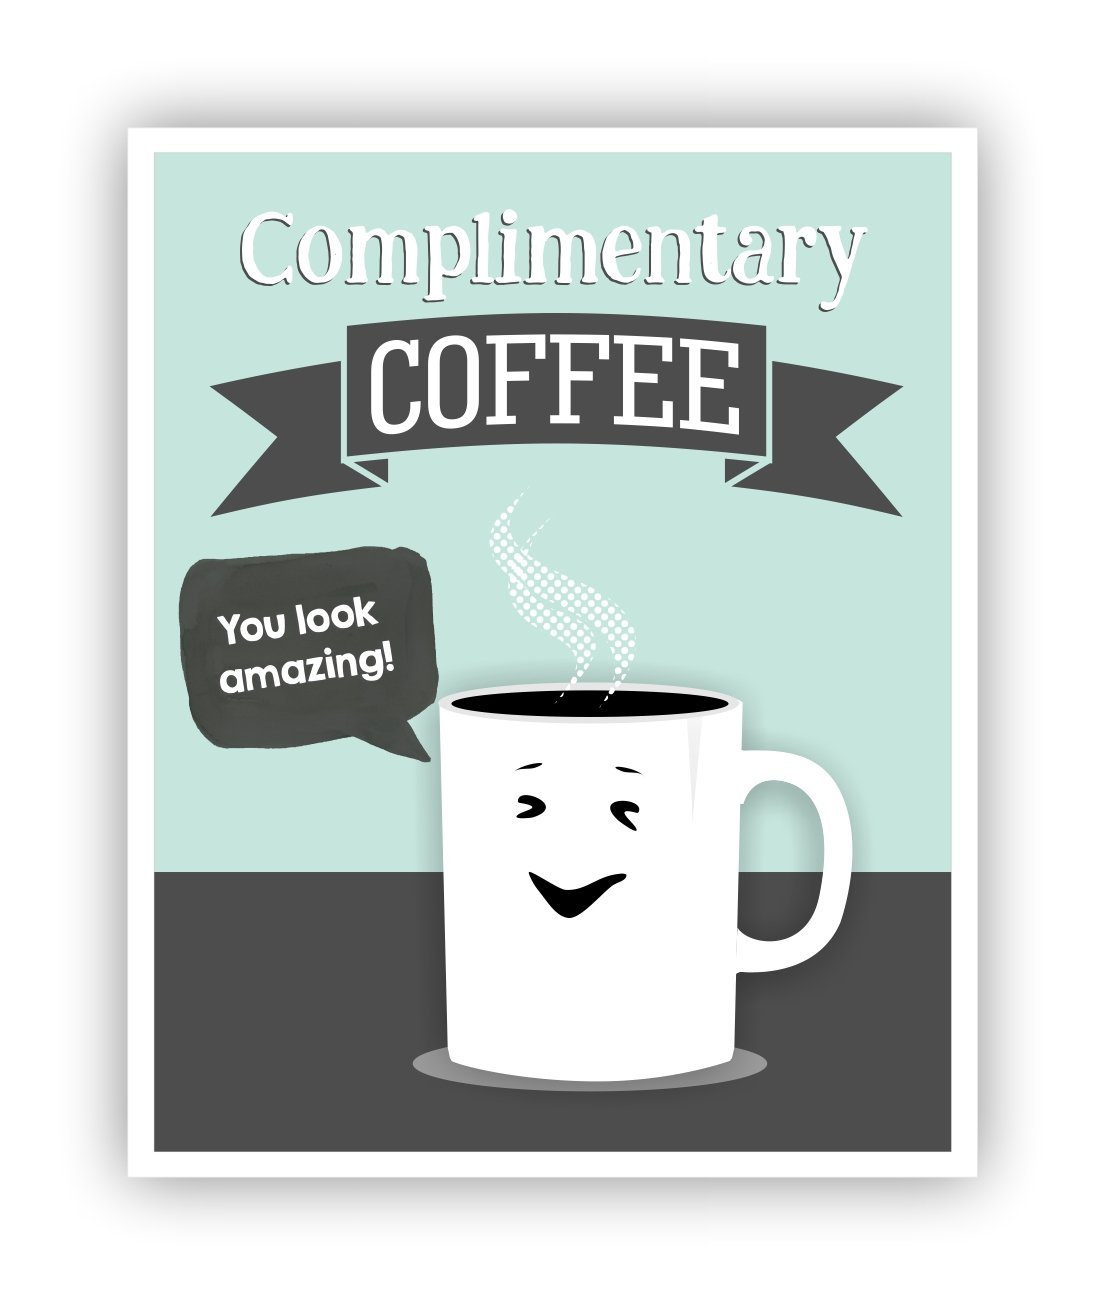 funny office poster. Amazon.com: Complimentary Coffee Poster, Office Art, Puns, Funny Pun 11 X 14 Poster: Handmade Poster -